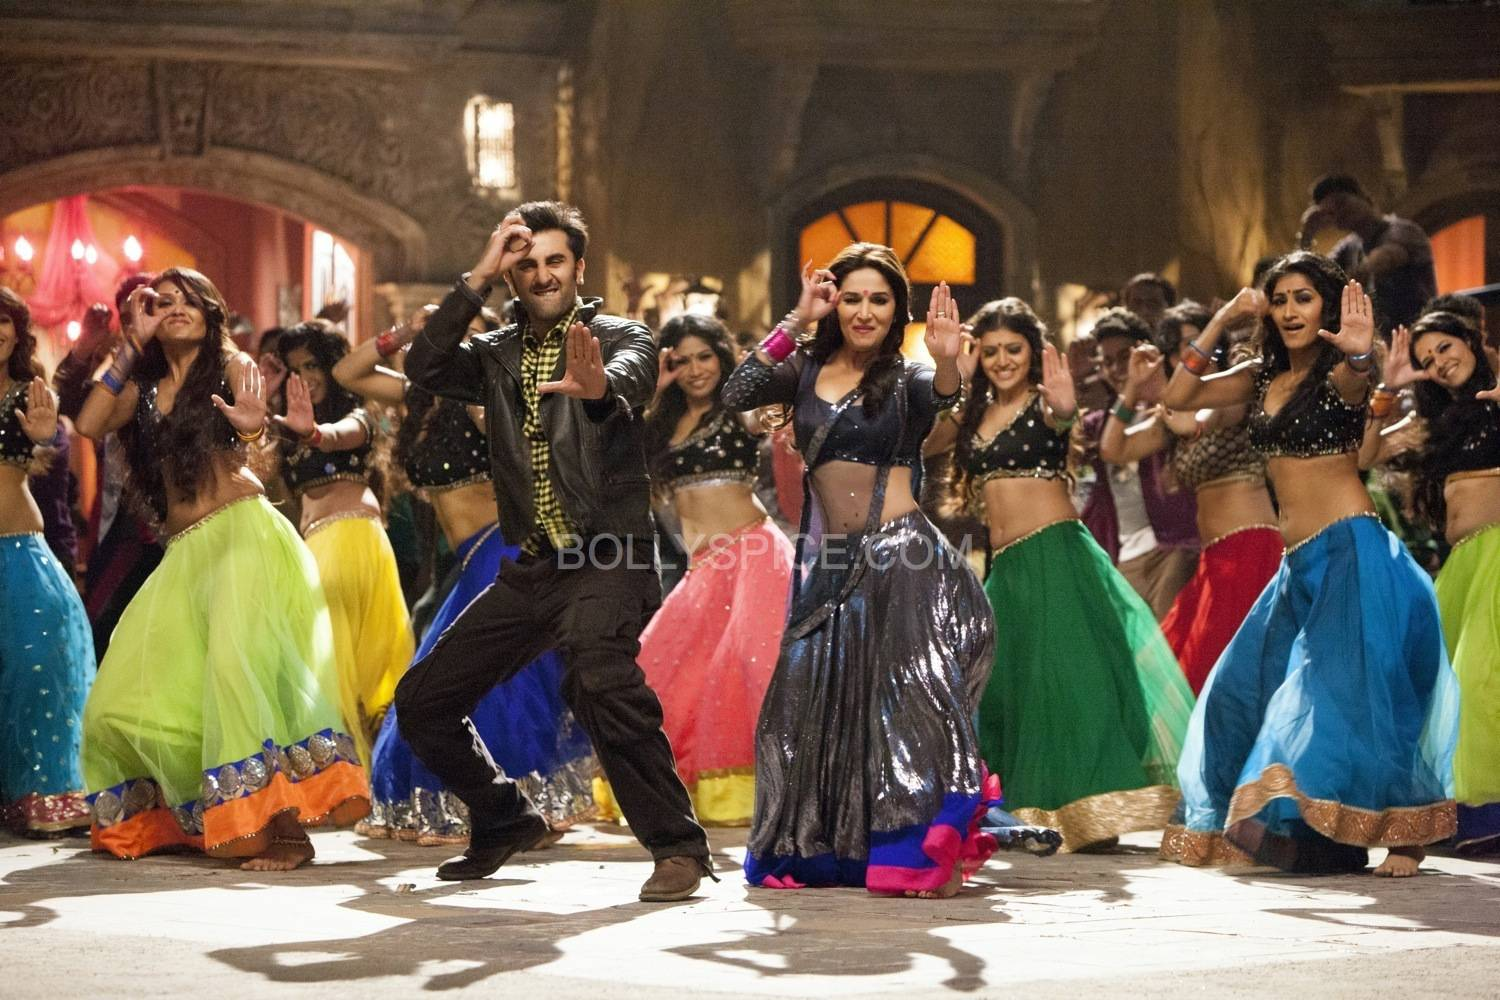 GHAGRA01 Ranbir and Madhuri in Ghagra from Yeh Jawaani Hai Deewani!